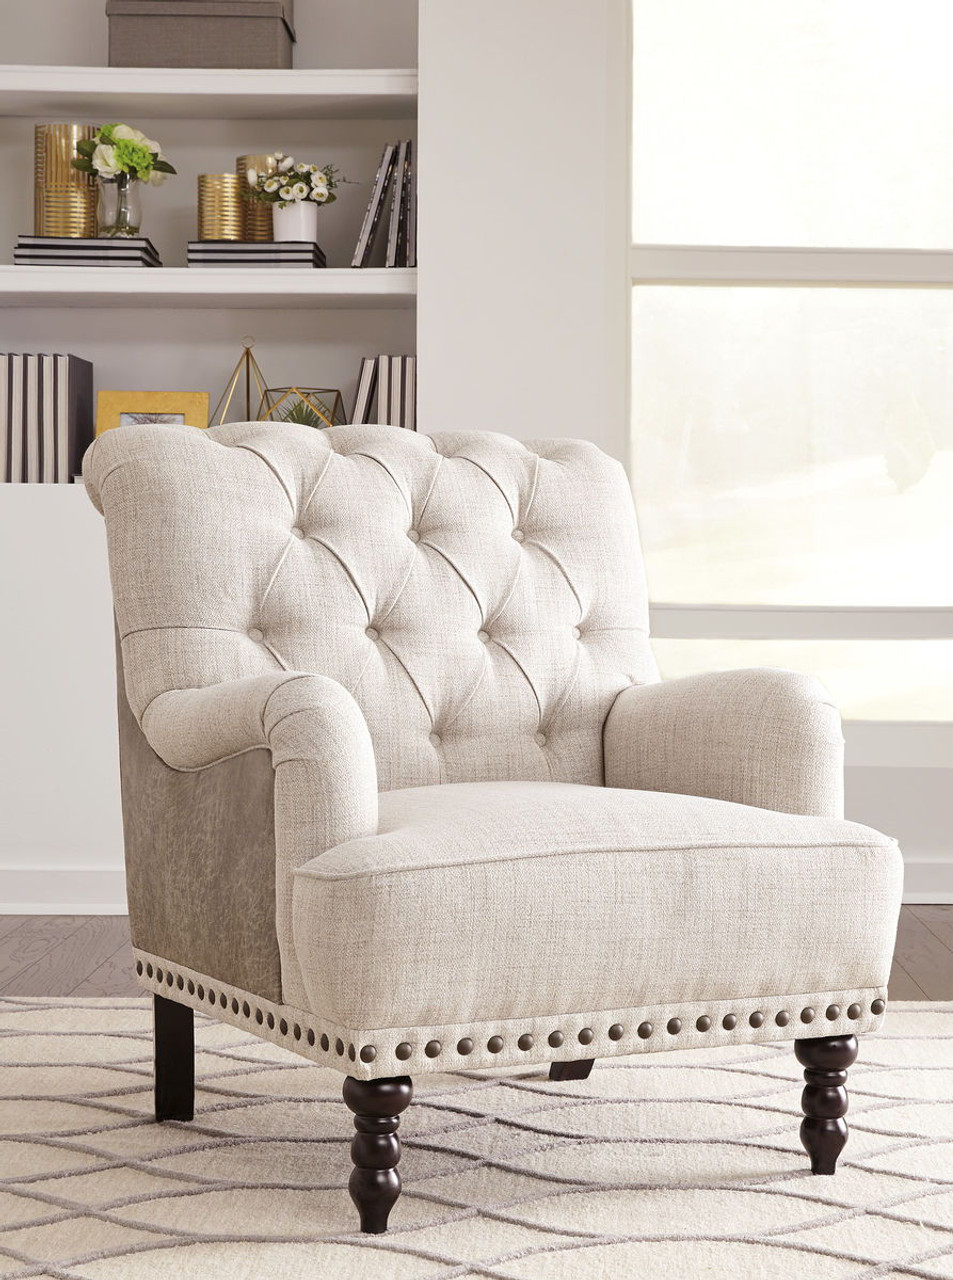 Rent A Center Accent Chairs.Tartonelle Ivory Taupe Accent Chair